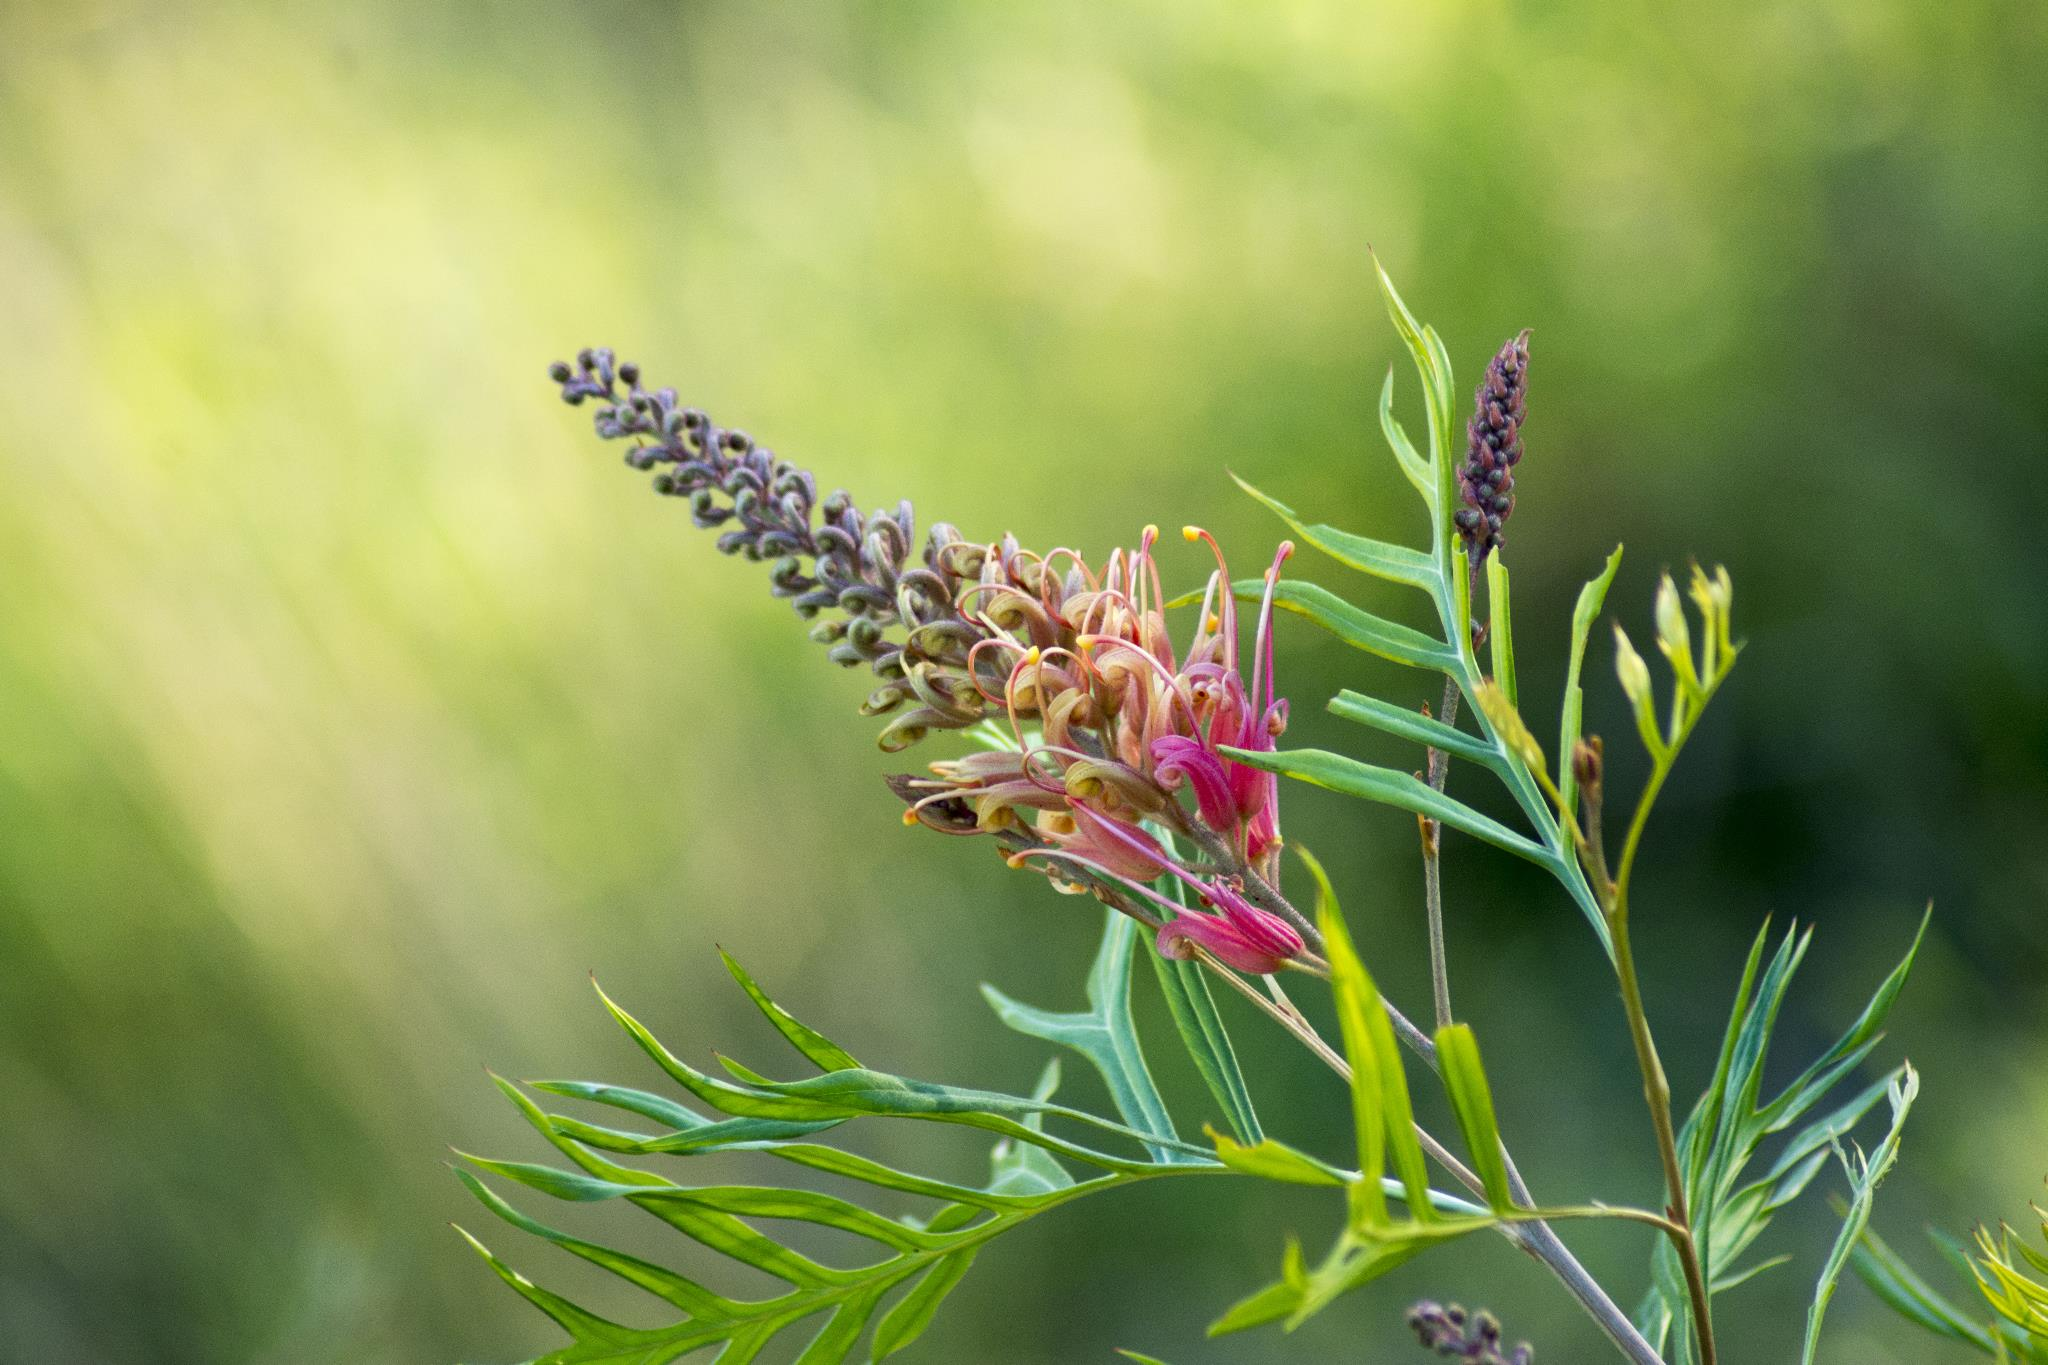 Grevillea Superb Flower - Close Up